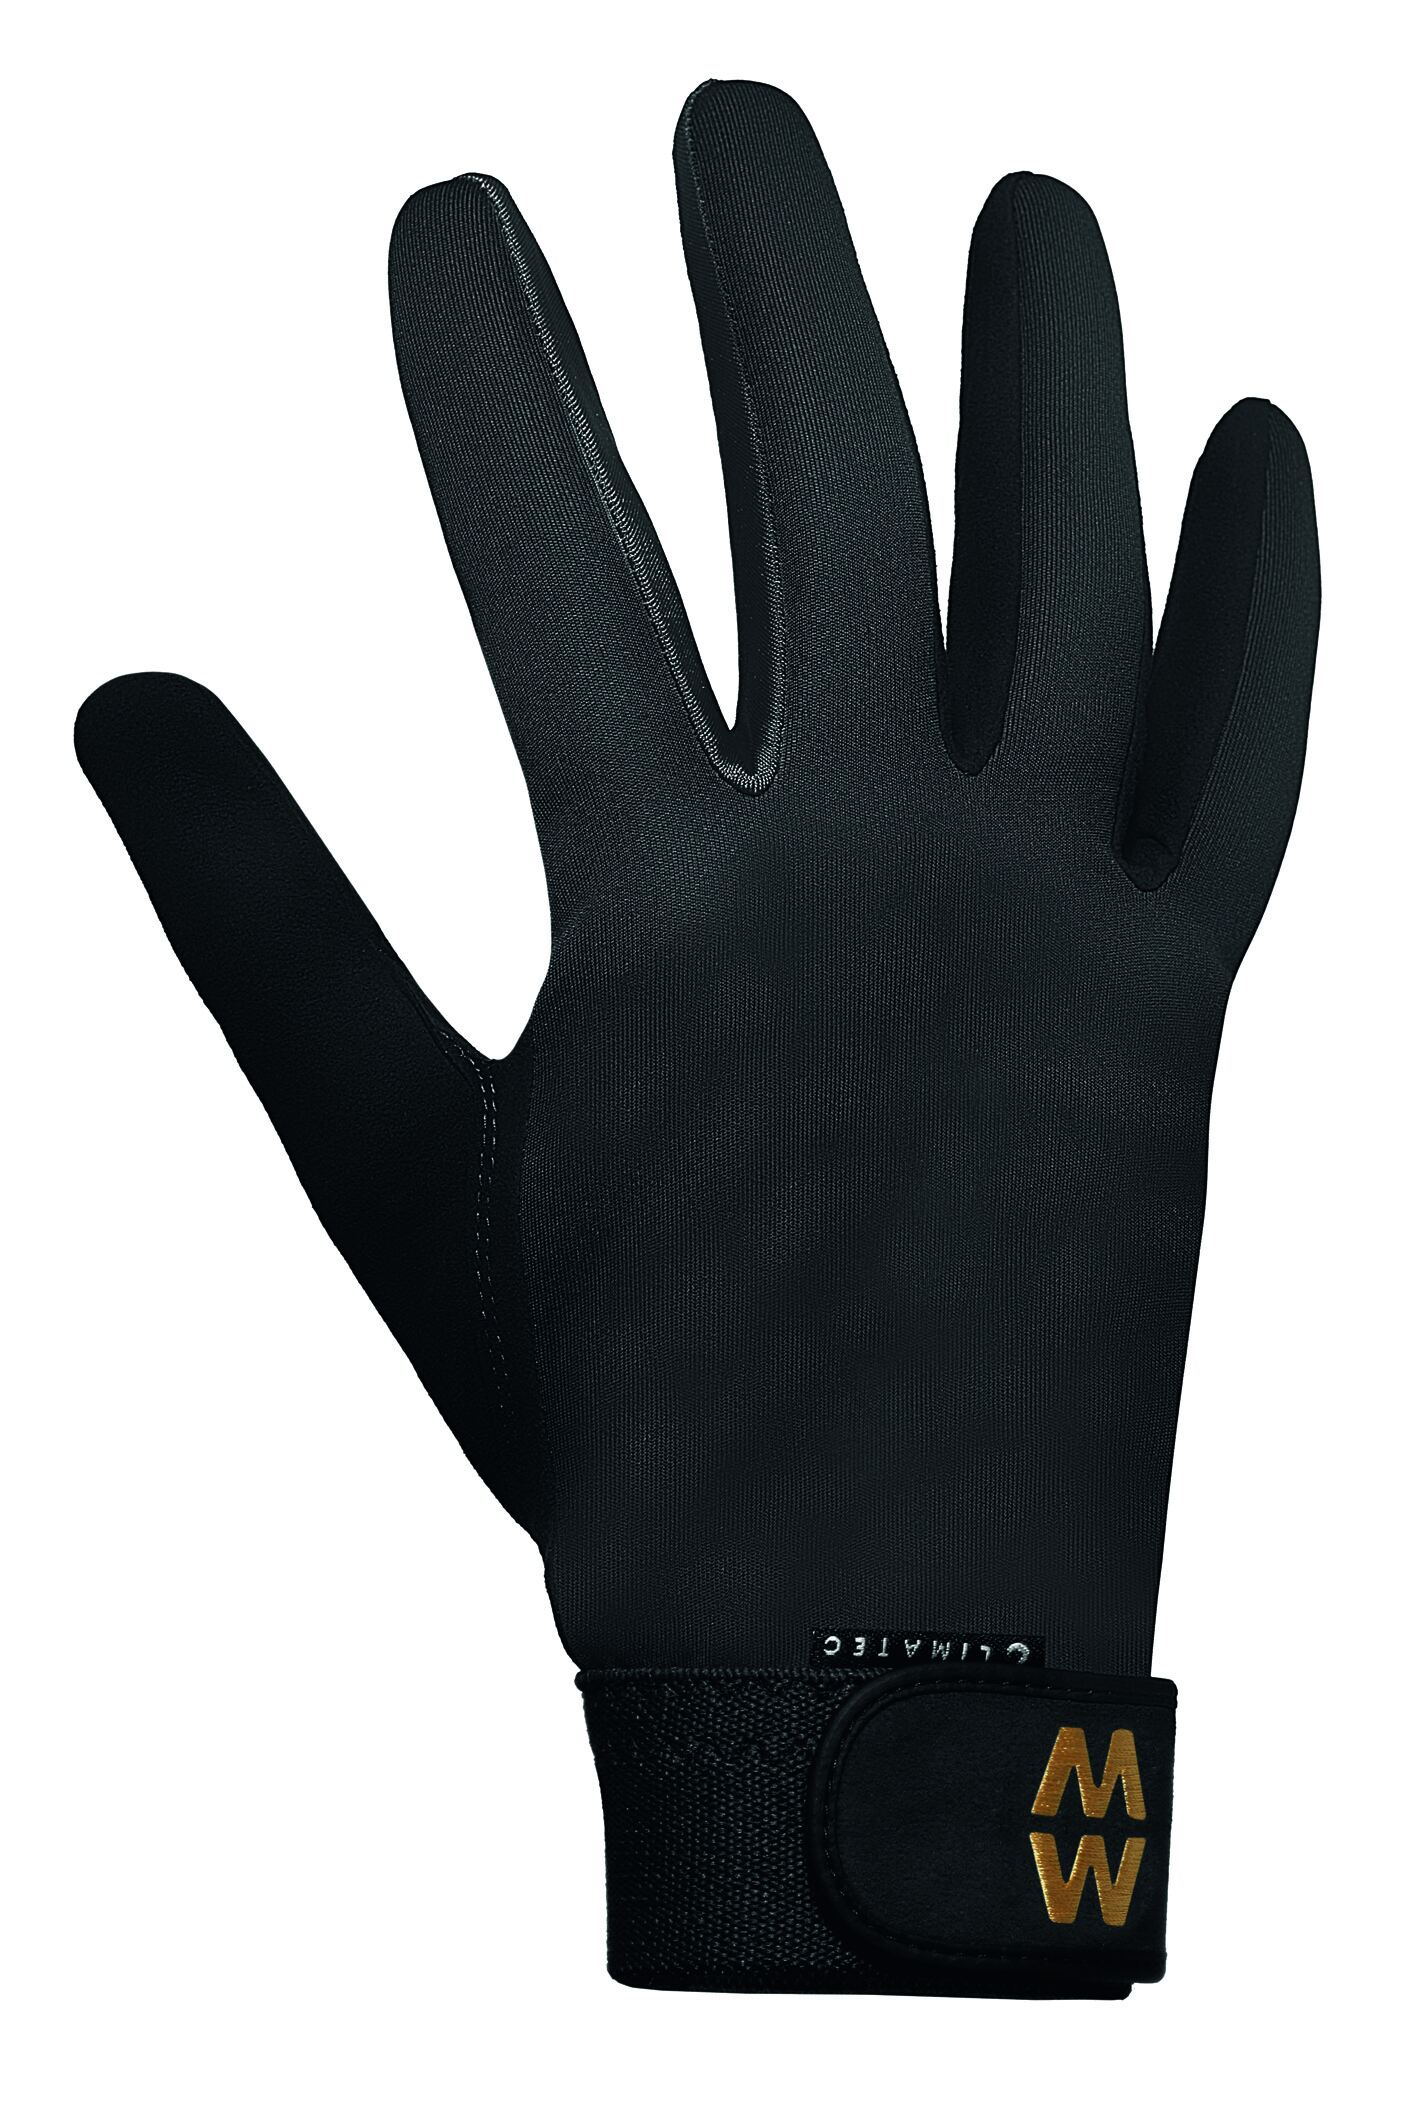 Image of 1 Pair Black MacWet Long Climatec Sports Gloves Unisex 6 Unisex - Macwet